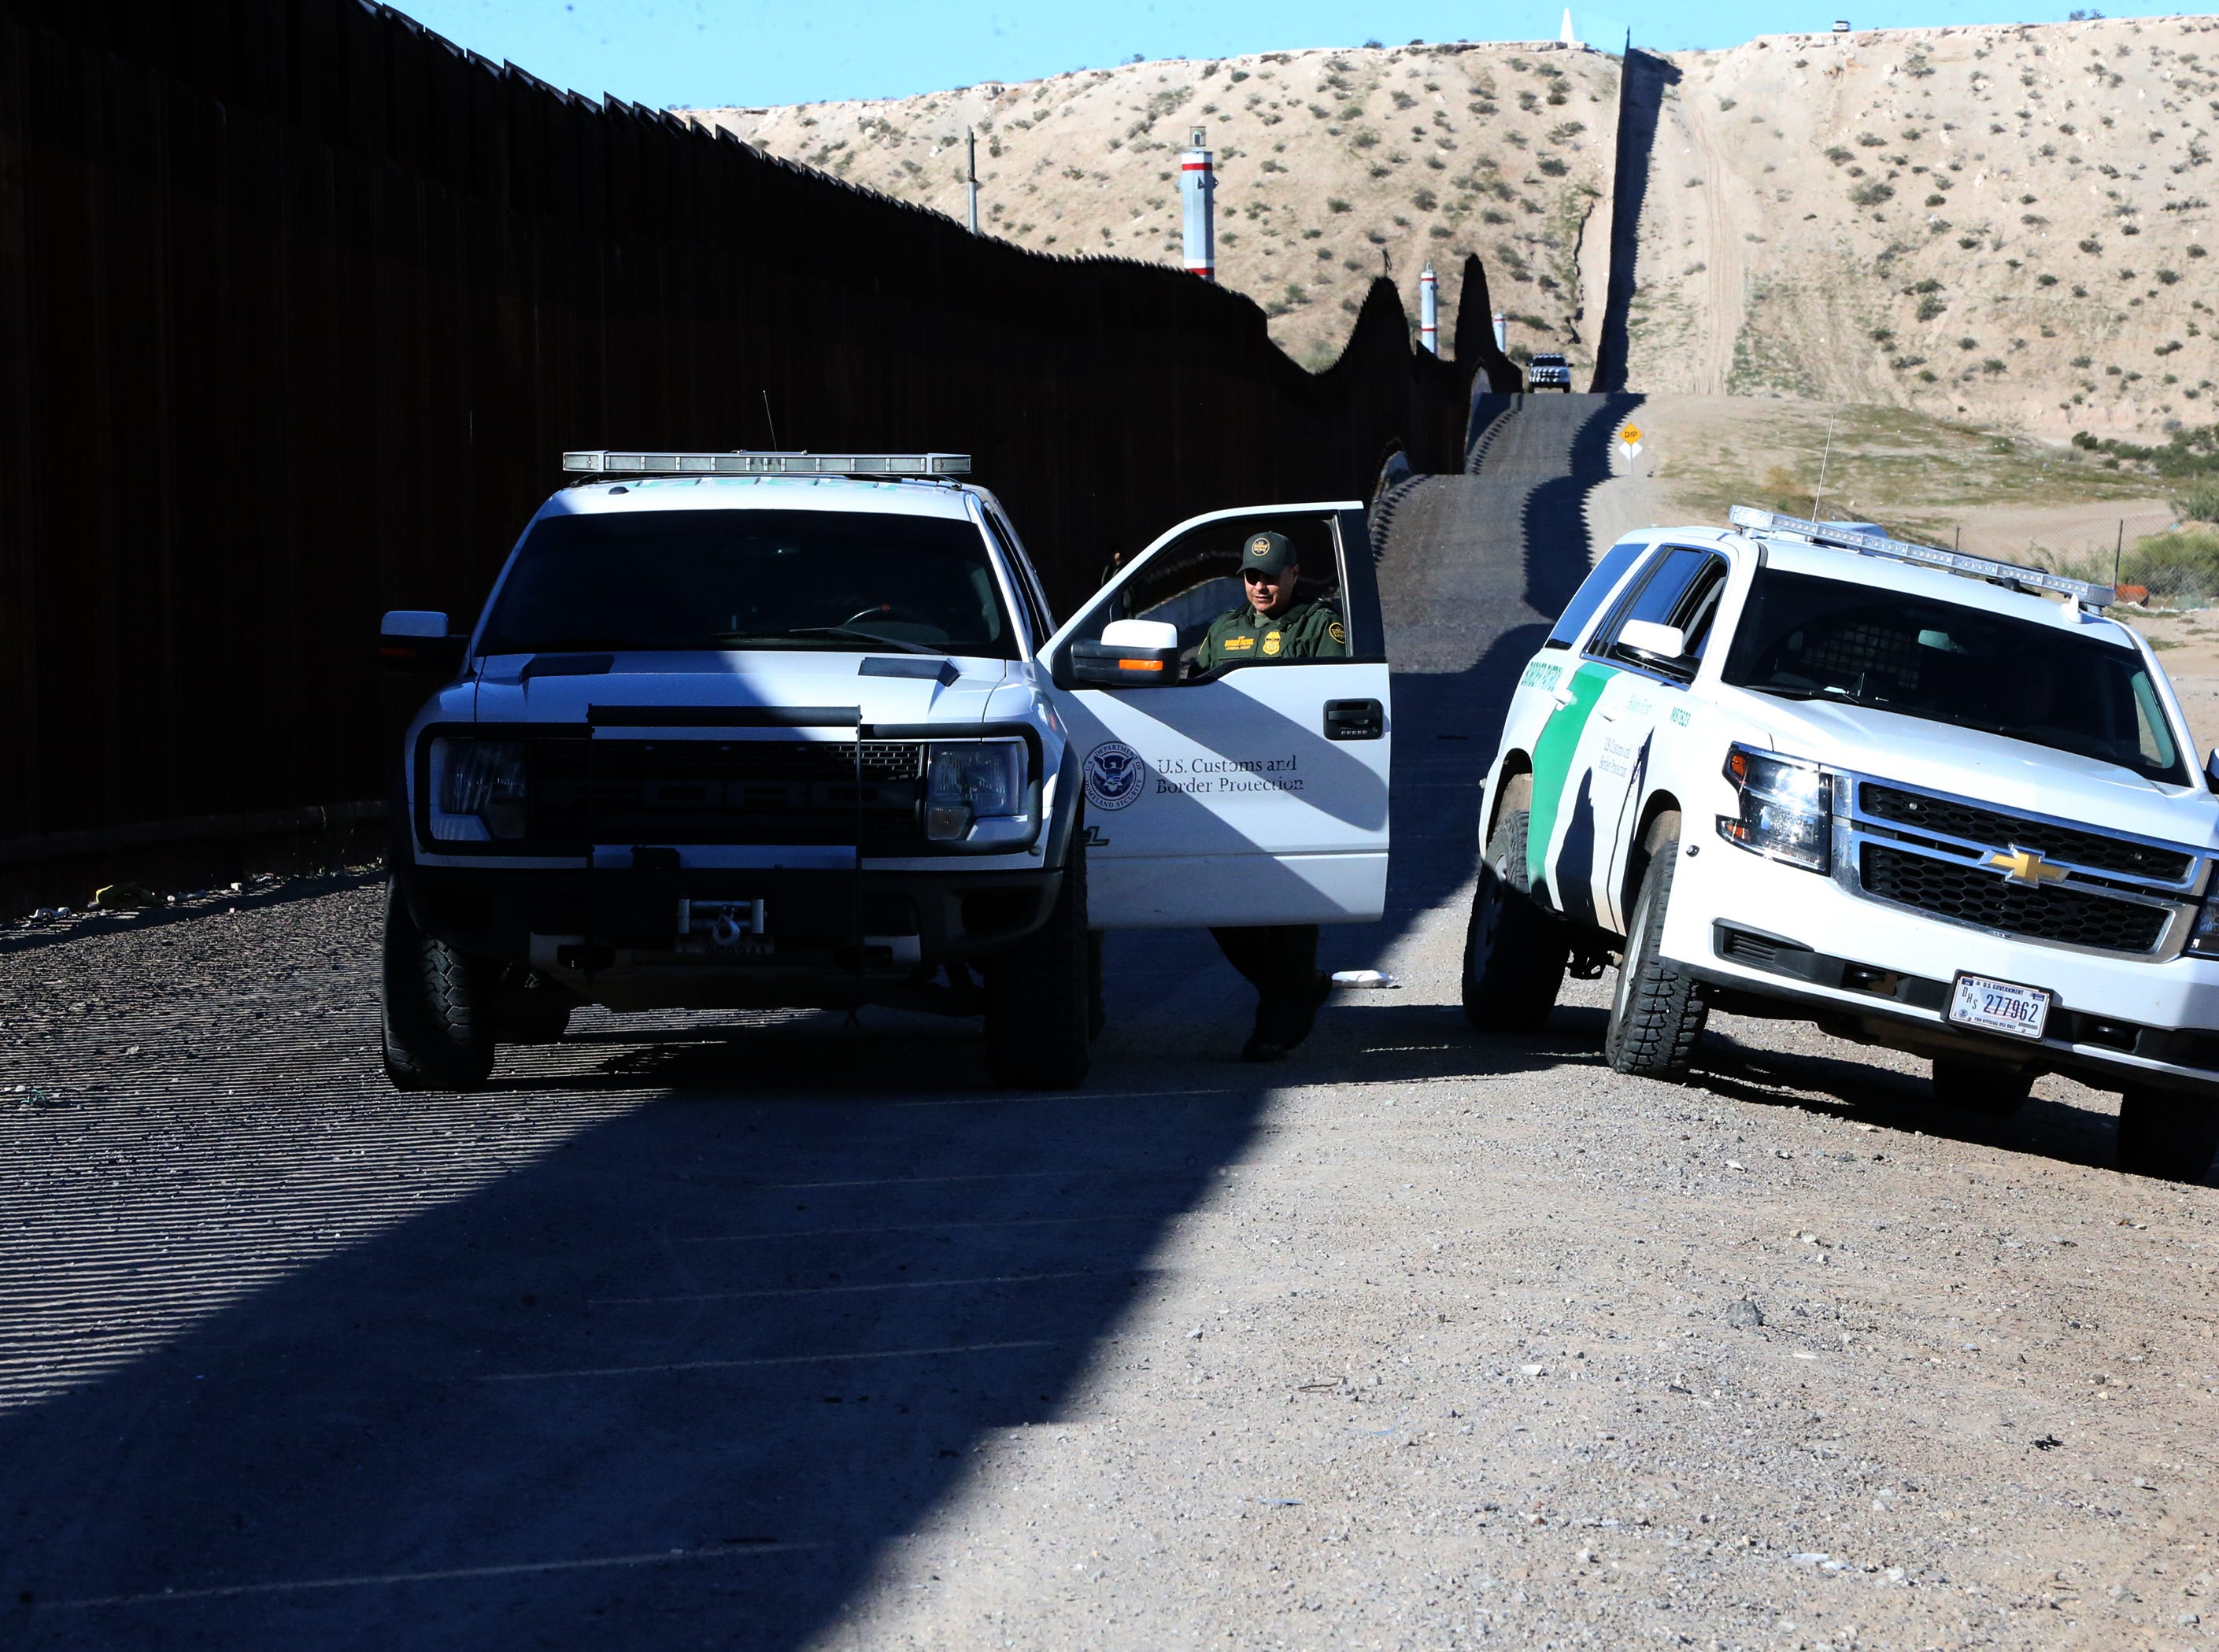 U.S. Border Patrol agents watch a gathering at the border fence Saturday.